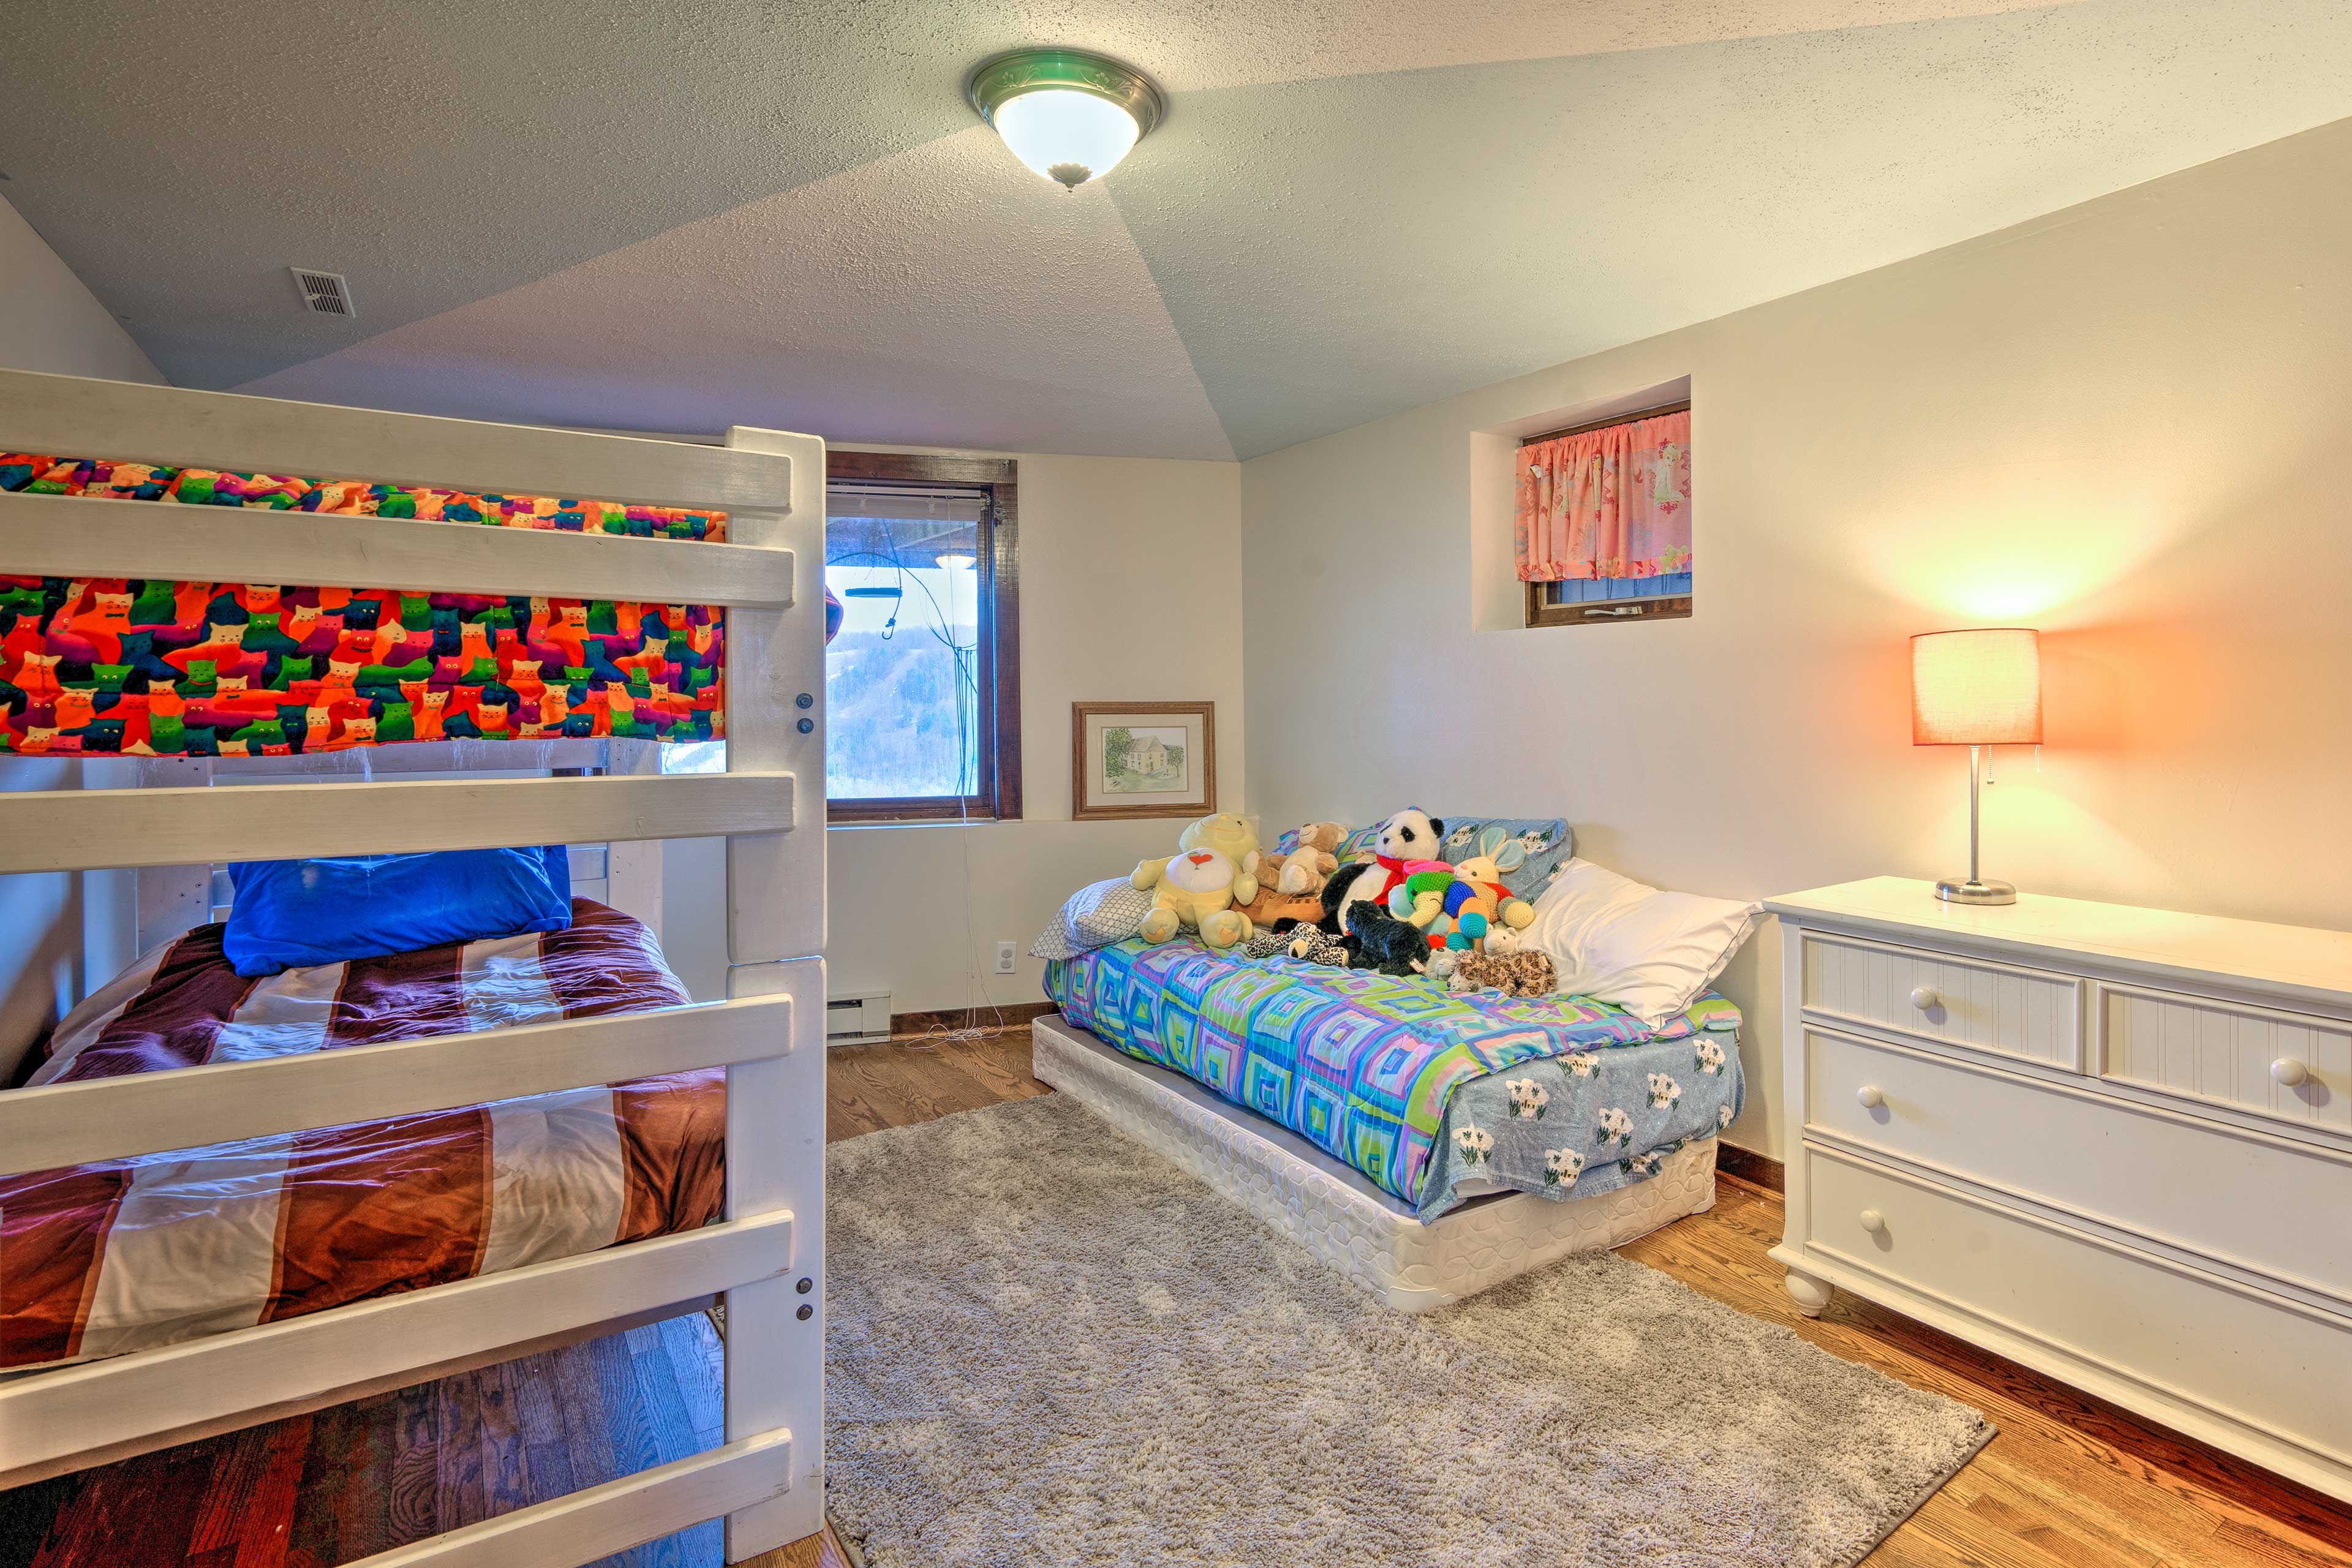 The second room features a twin over twin bunk bed and an additional twin bed.